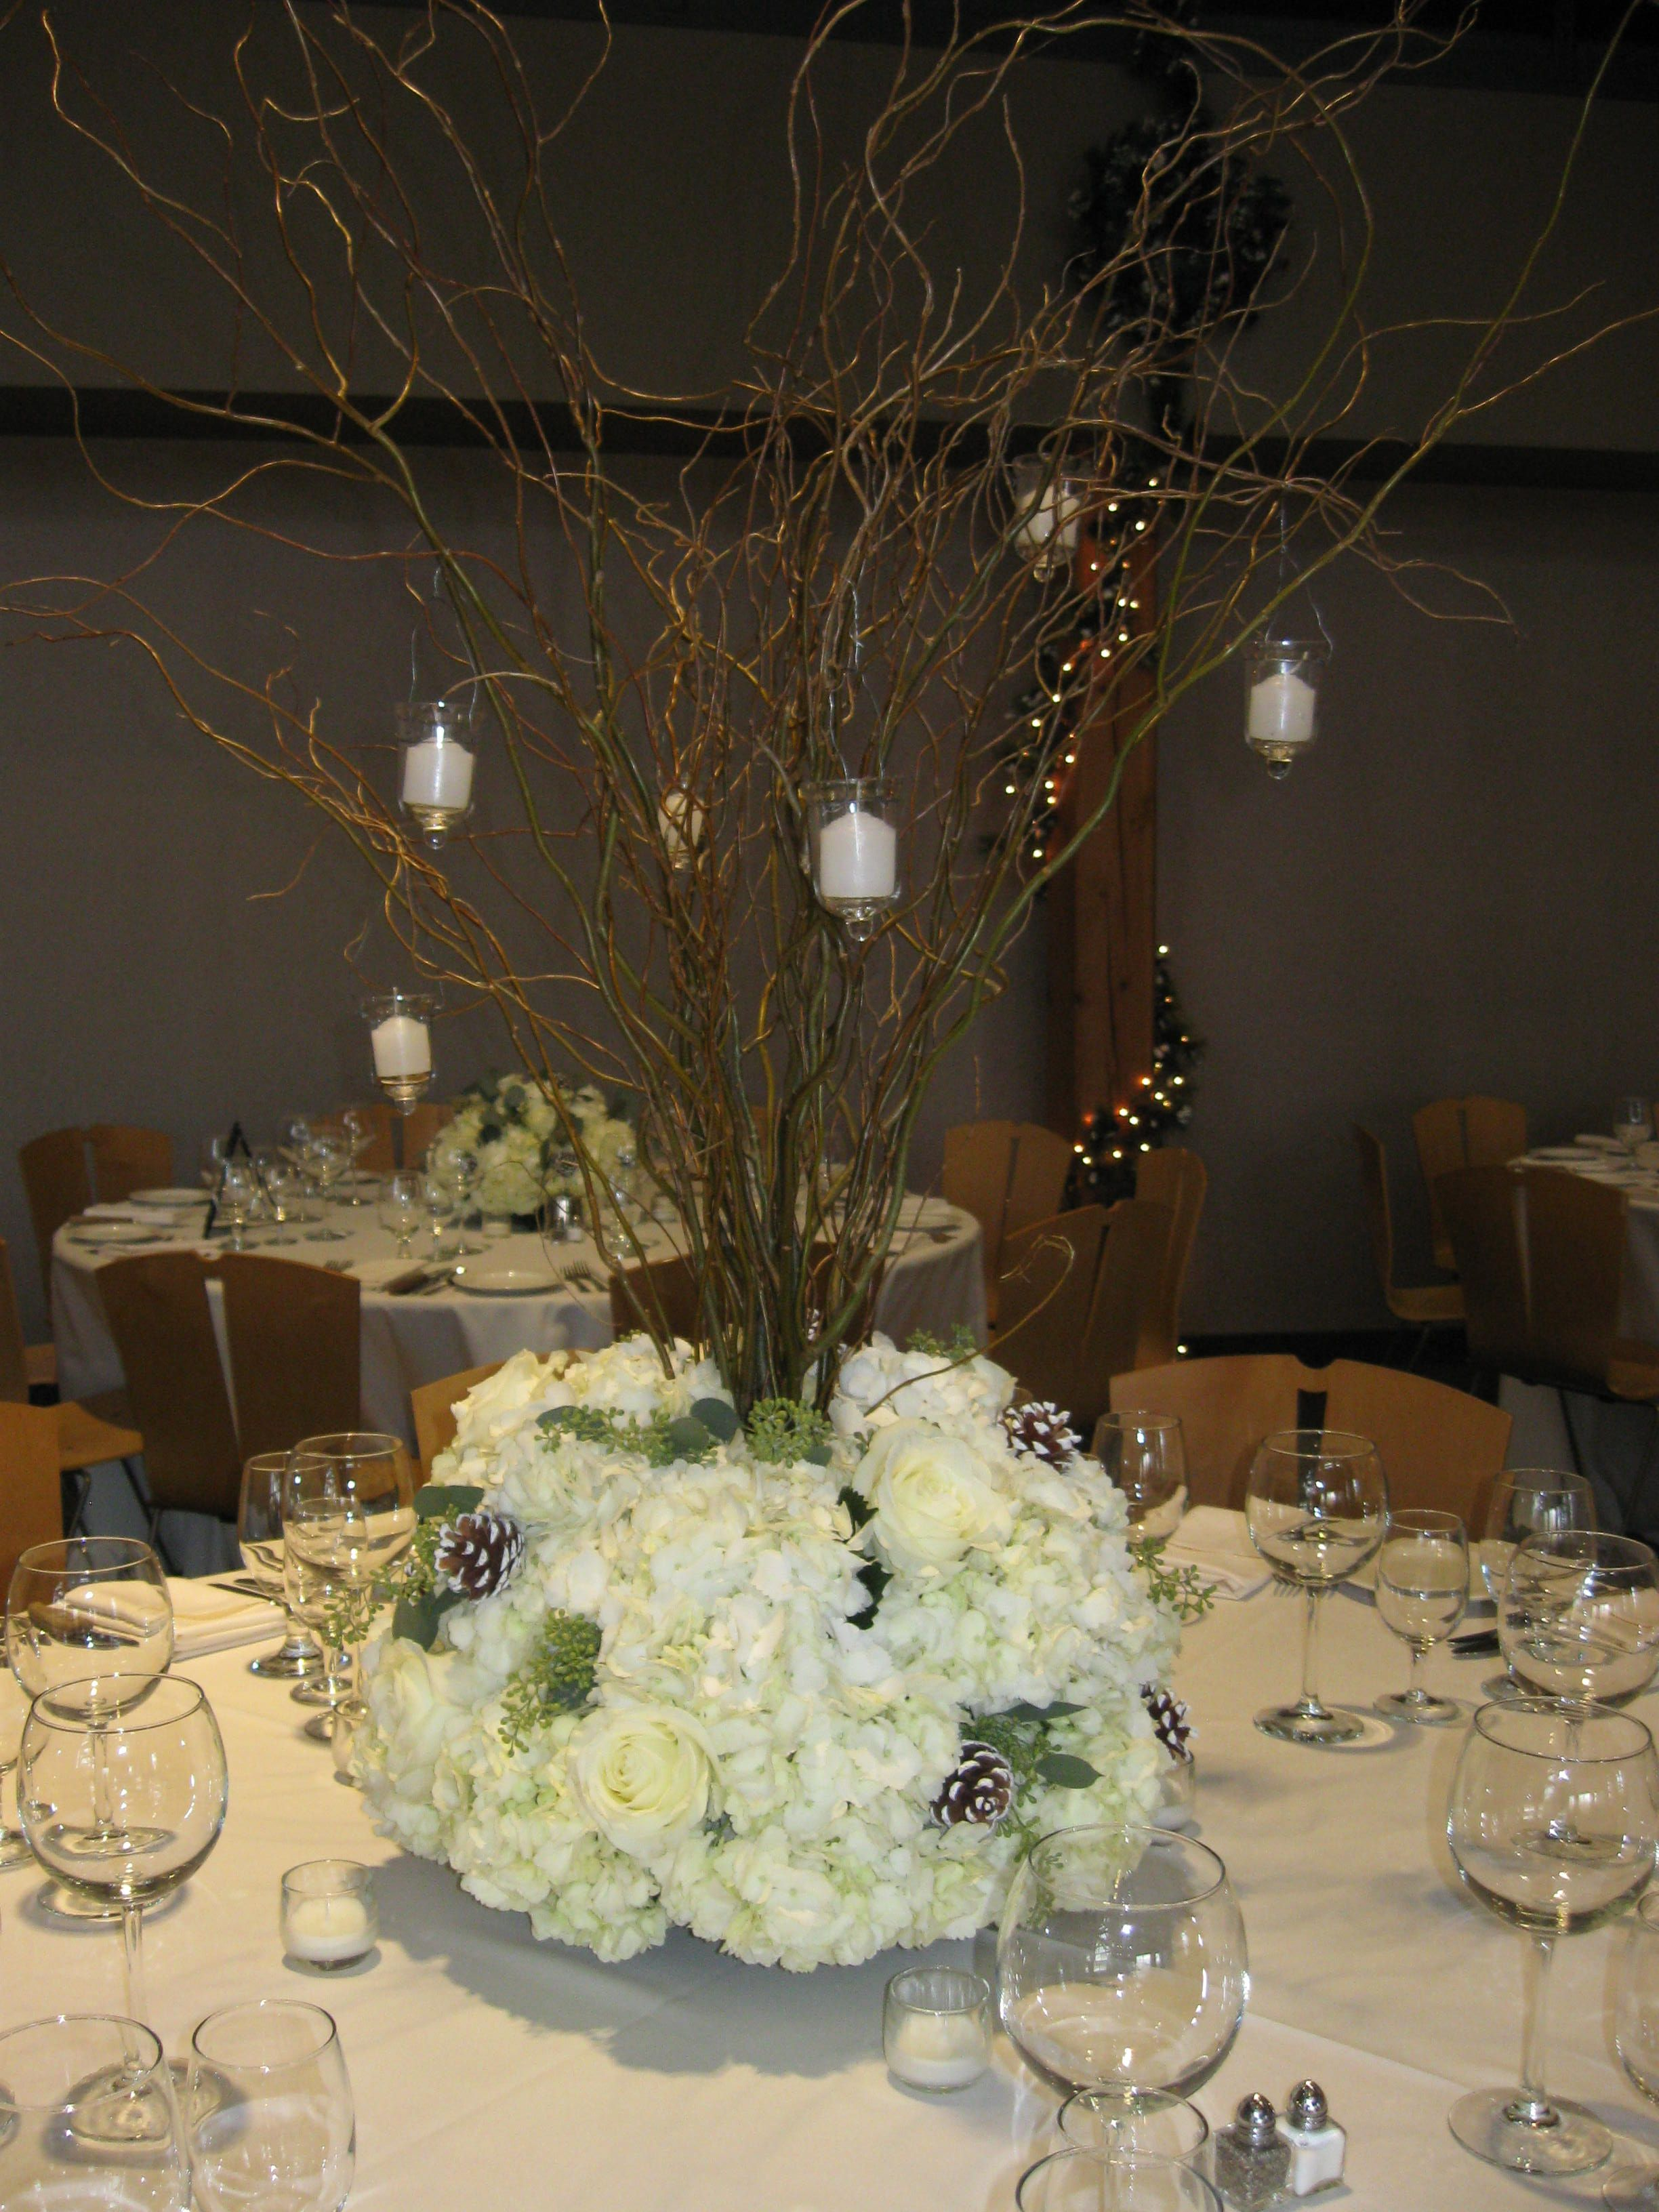 Winter Centerpieces With Branches : Pin by backyard garden florist on centerpieces pinterest